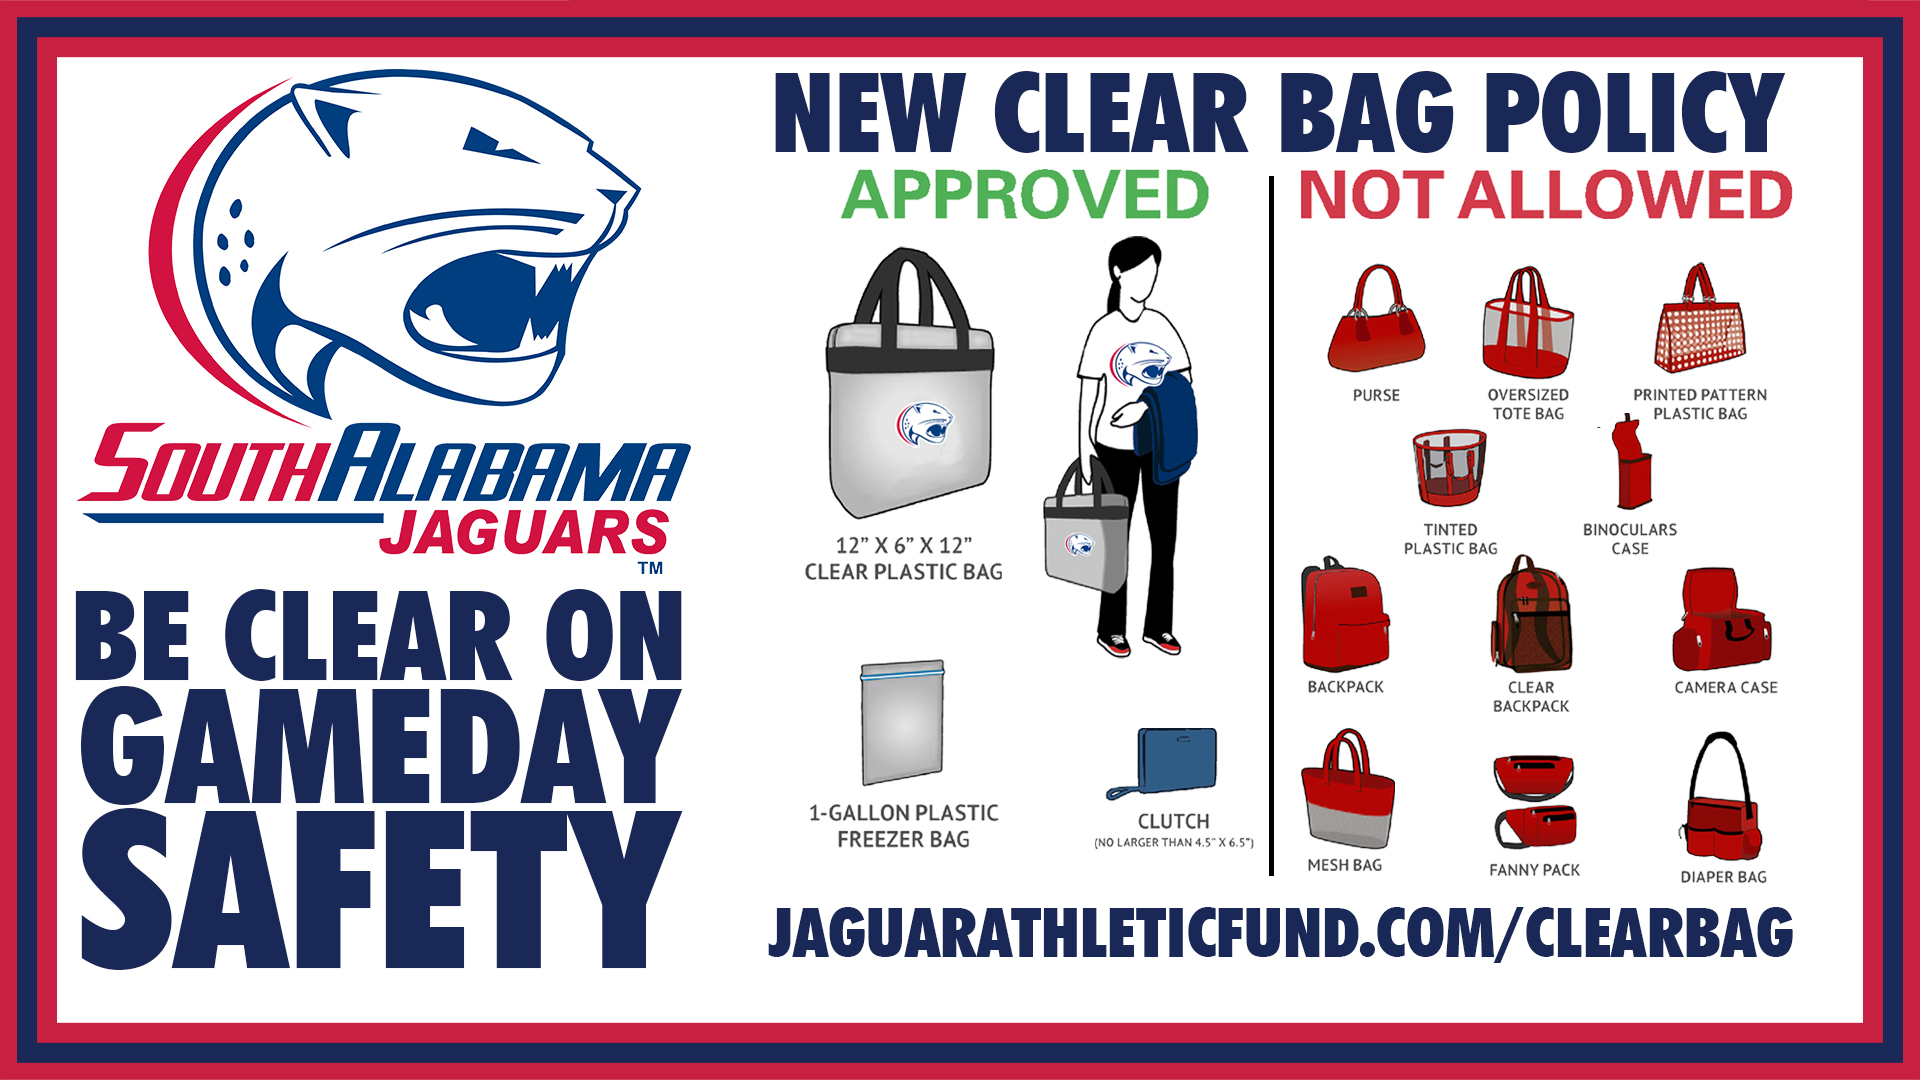 South alabama implements clear bag policy at ladd peebles stadium south alabama implements clear bag policy at ladd peebles stadium sciox Gallery